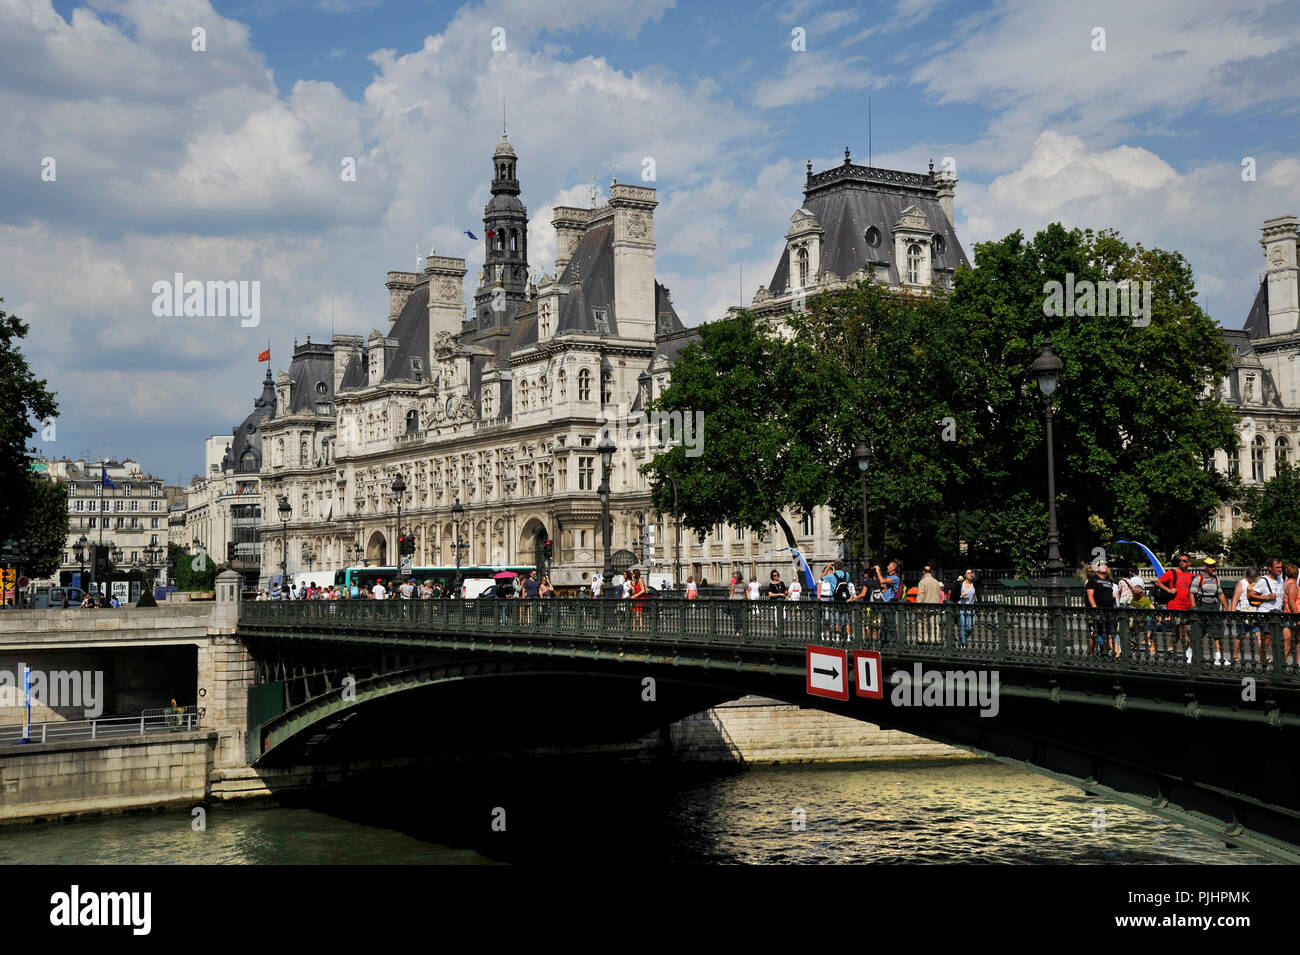 France, Paris City, the Arcole Bridge over the Seine in front of Paris City Hall. - Stock Image